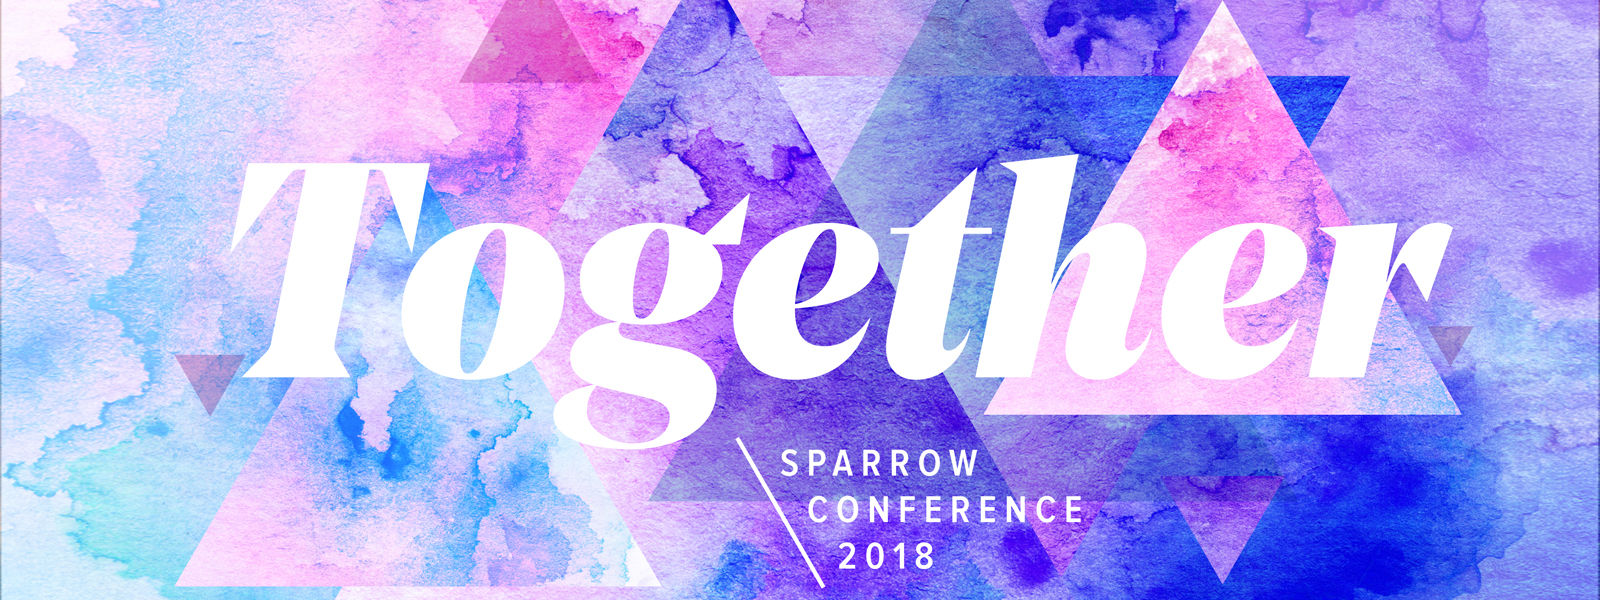 Sparrow Conference 2018: Together